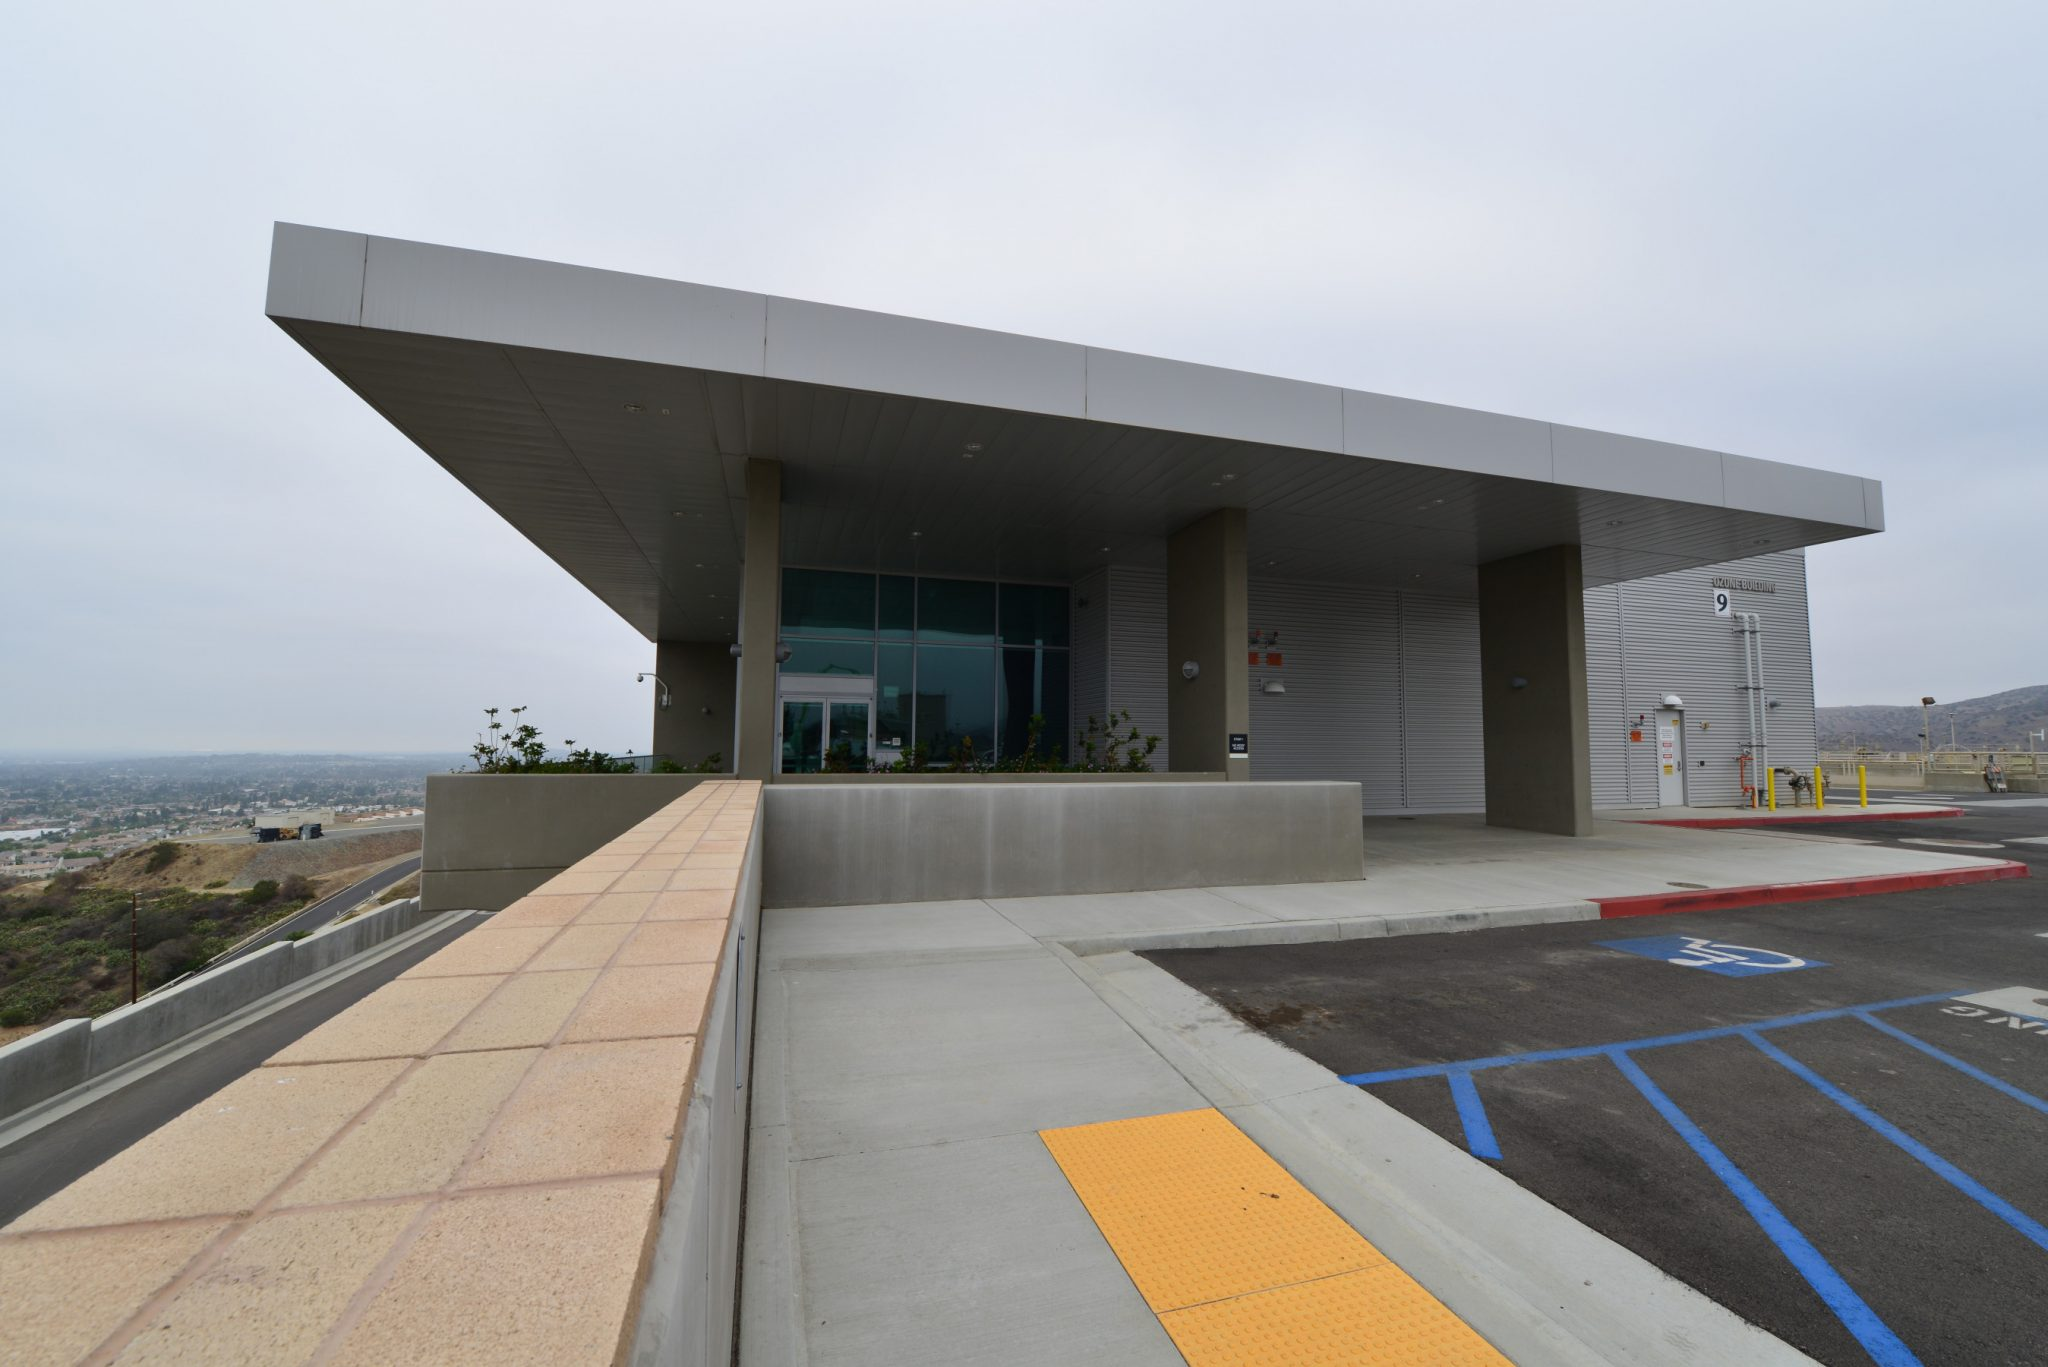 Robert b diemer filtration plant mwa architects for O zone architecture